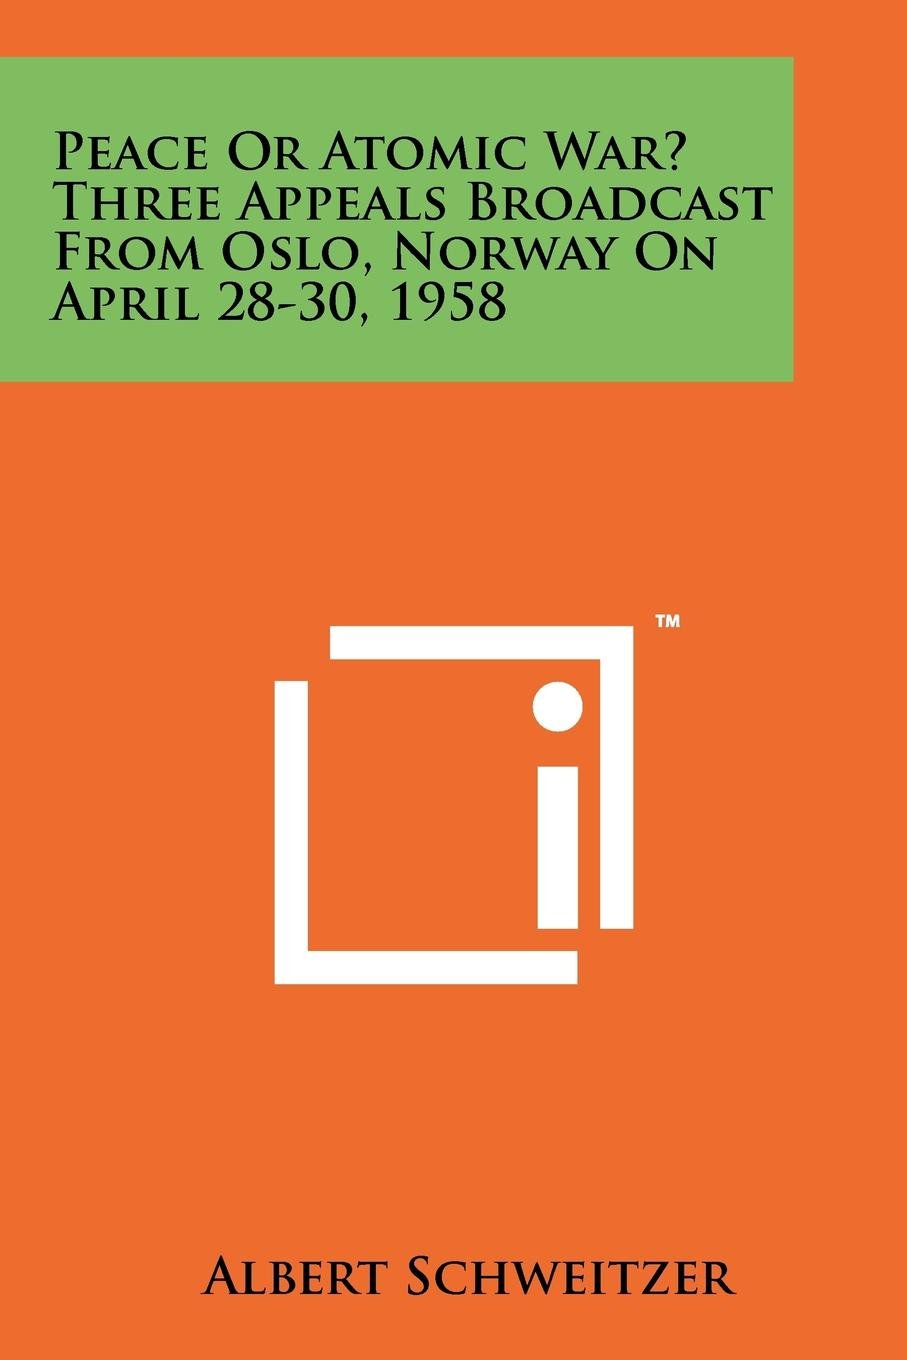 Download Peace or Atomic War? Three Appeals Broadcast from Oslo, Norway on April 28-30, 1958 PDF